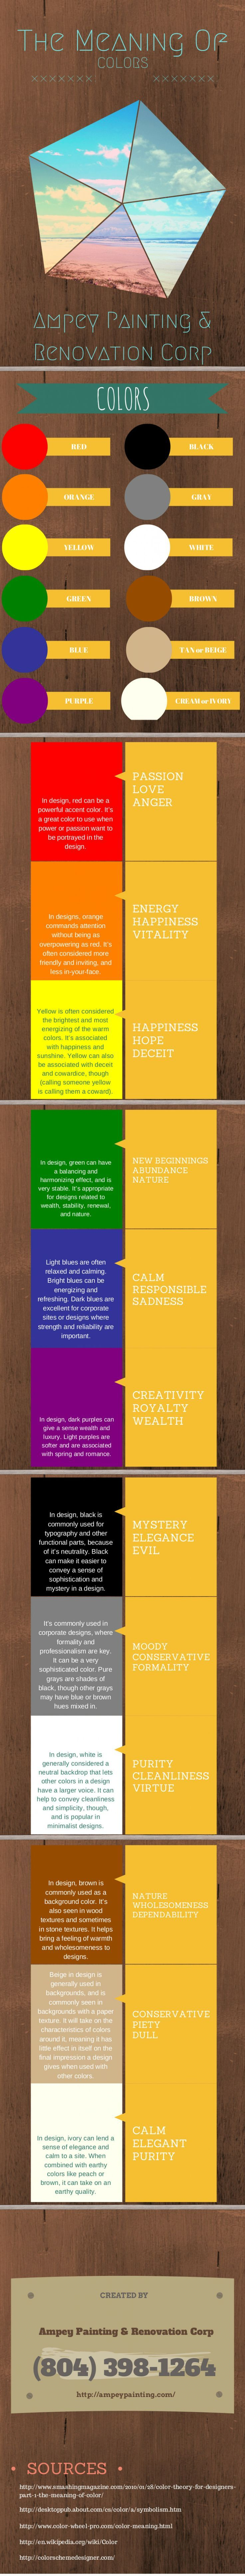 Psychology : The meaning of color...   Pinterest   Psychology and ...